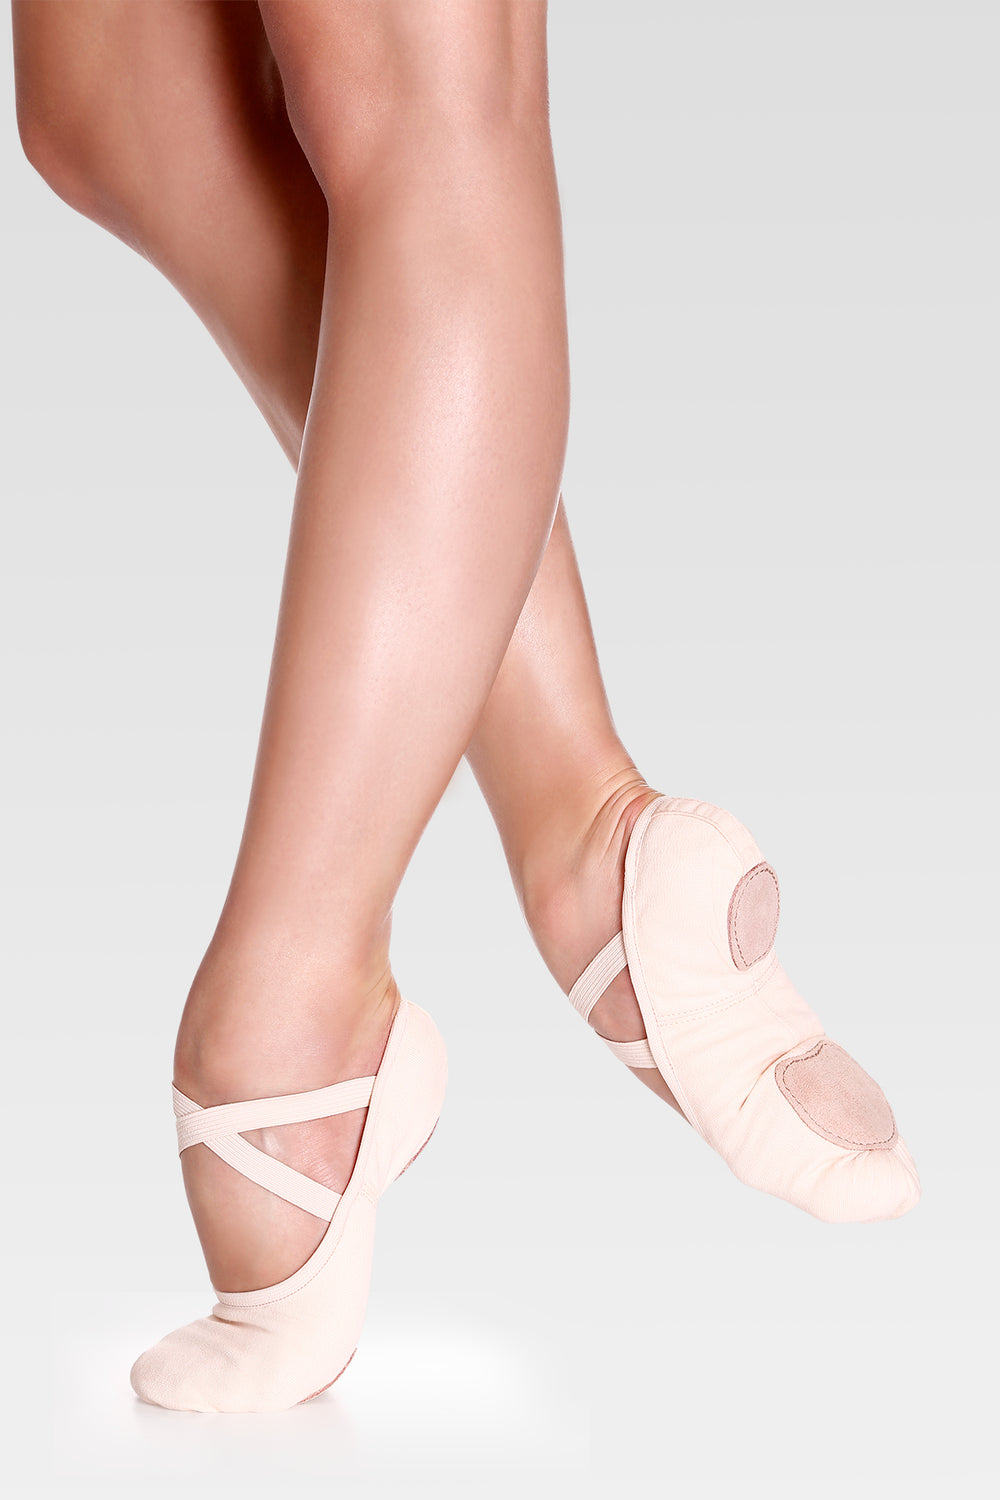 ballet shoes brown mocha stretch canvas african American dancers